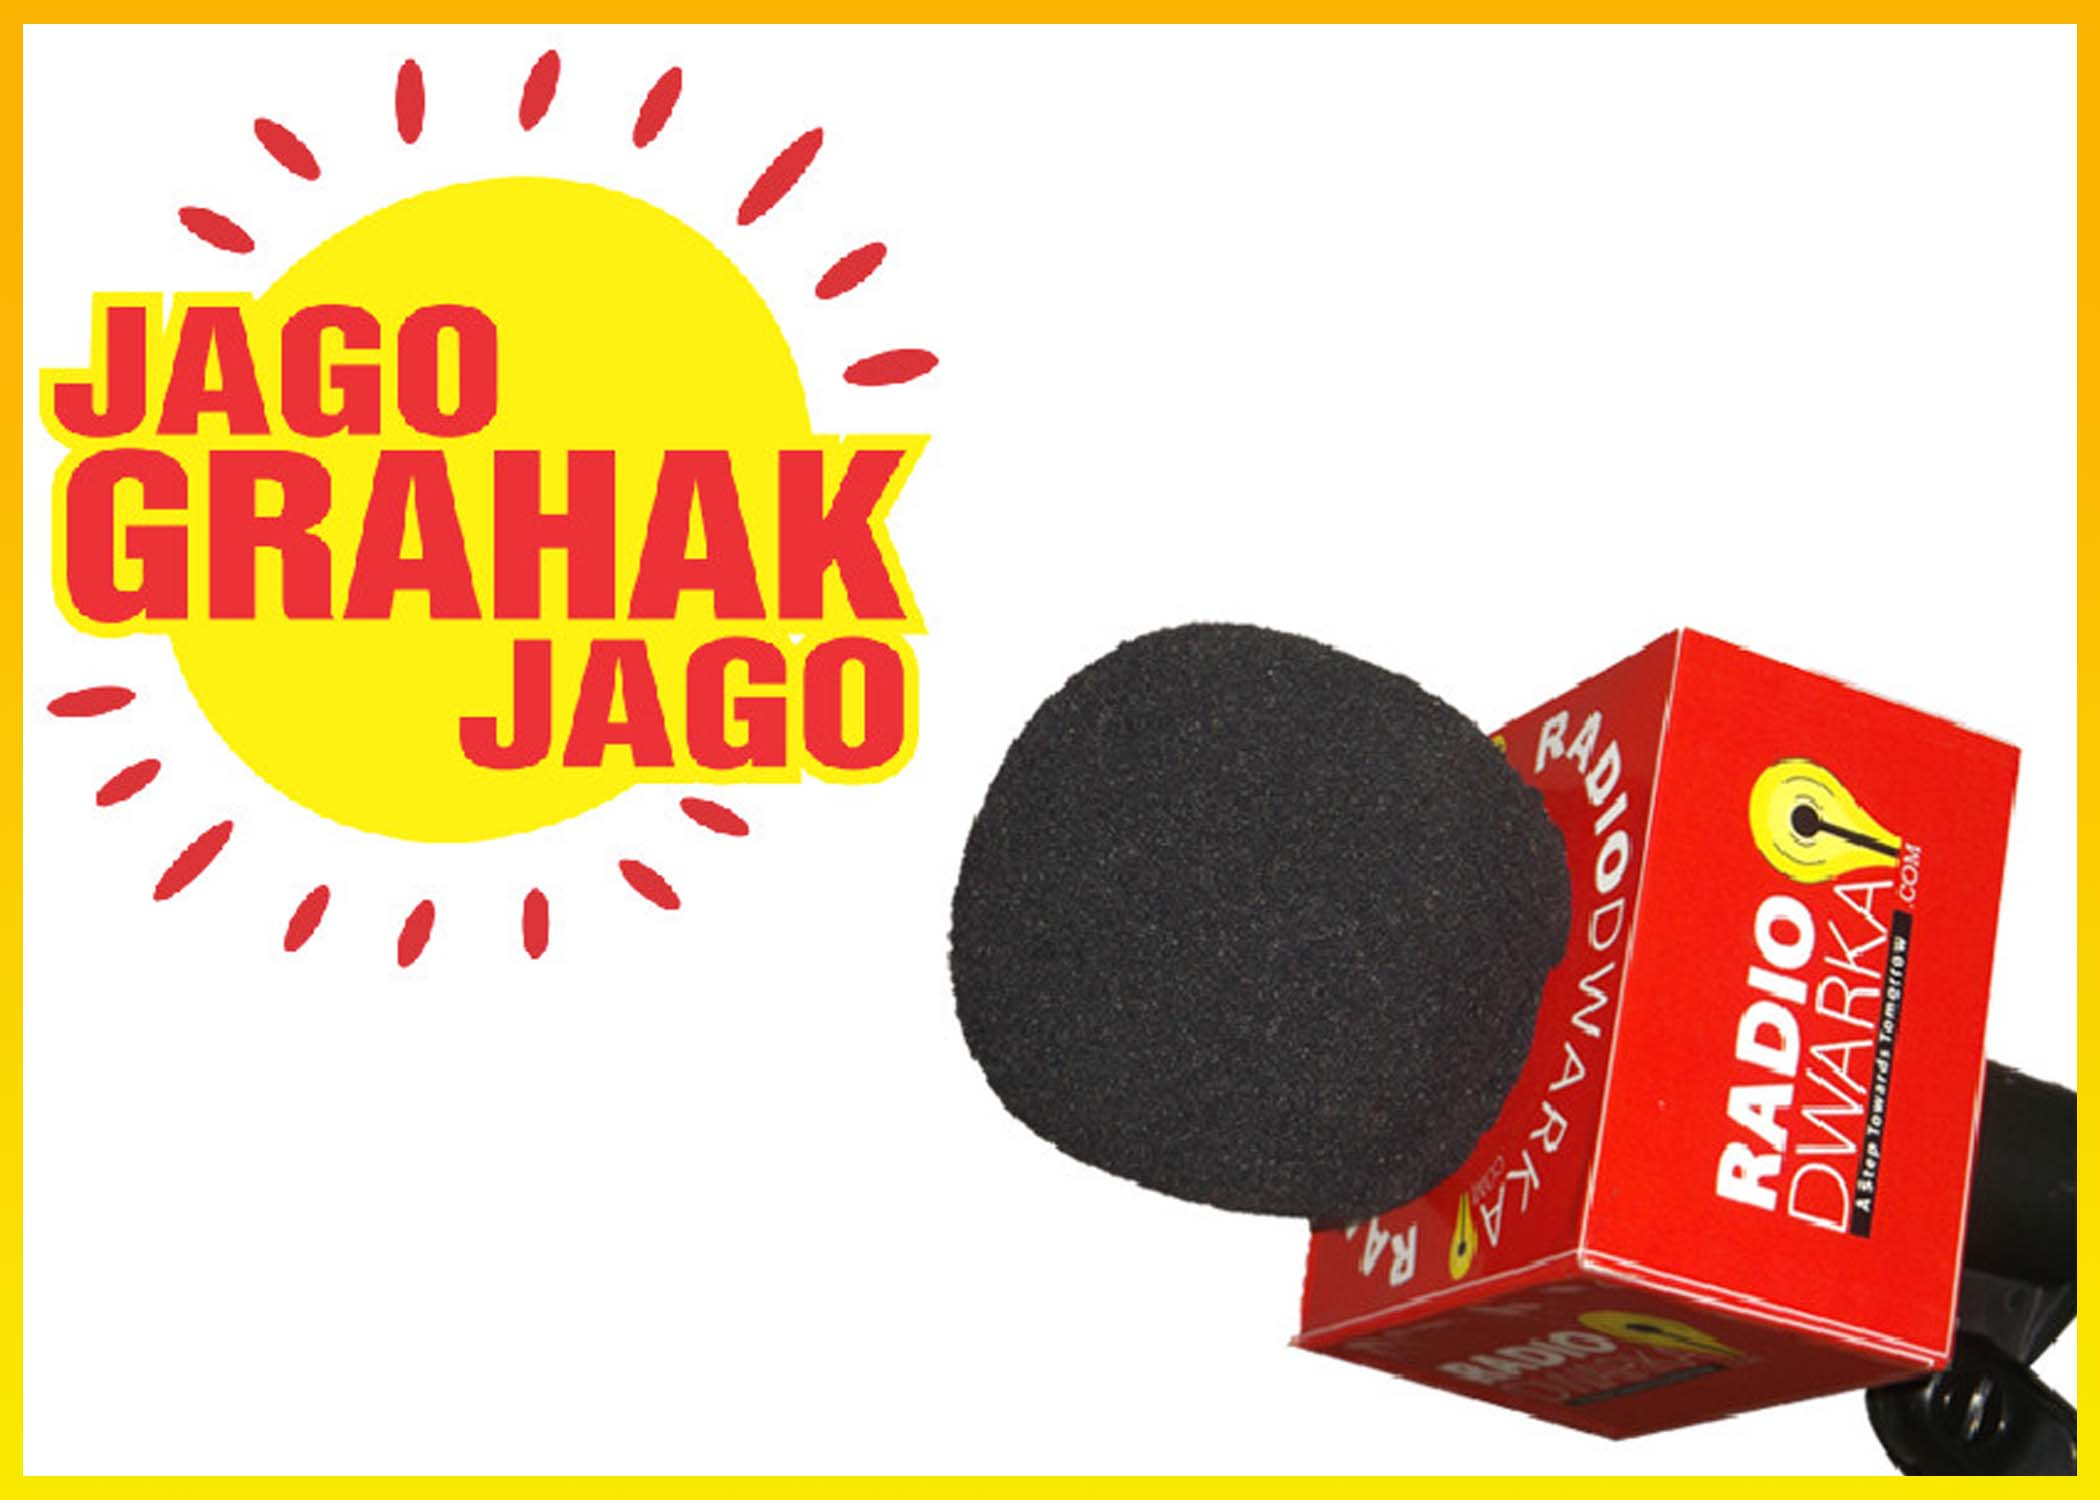 jaago grahak jago Jago grahak jago the slogan 'jago grahak jago' has now become a household name as a result of the publicity campaign undertaken in the last 5 years.